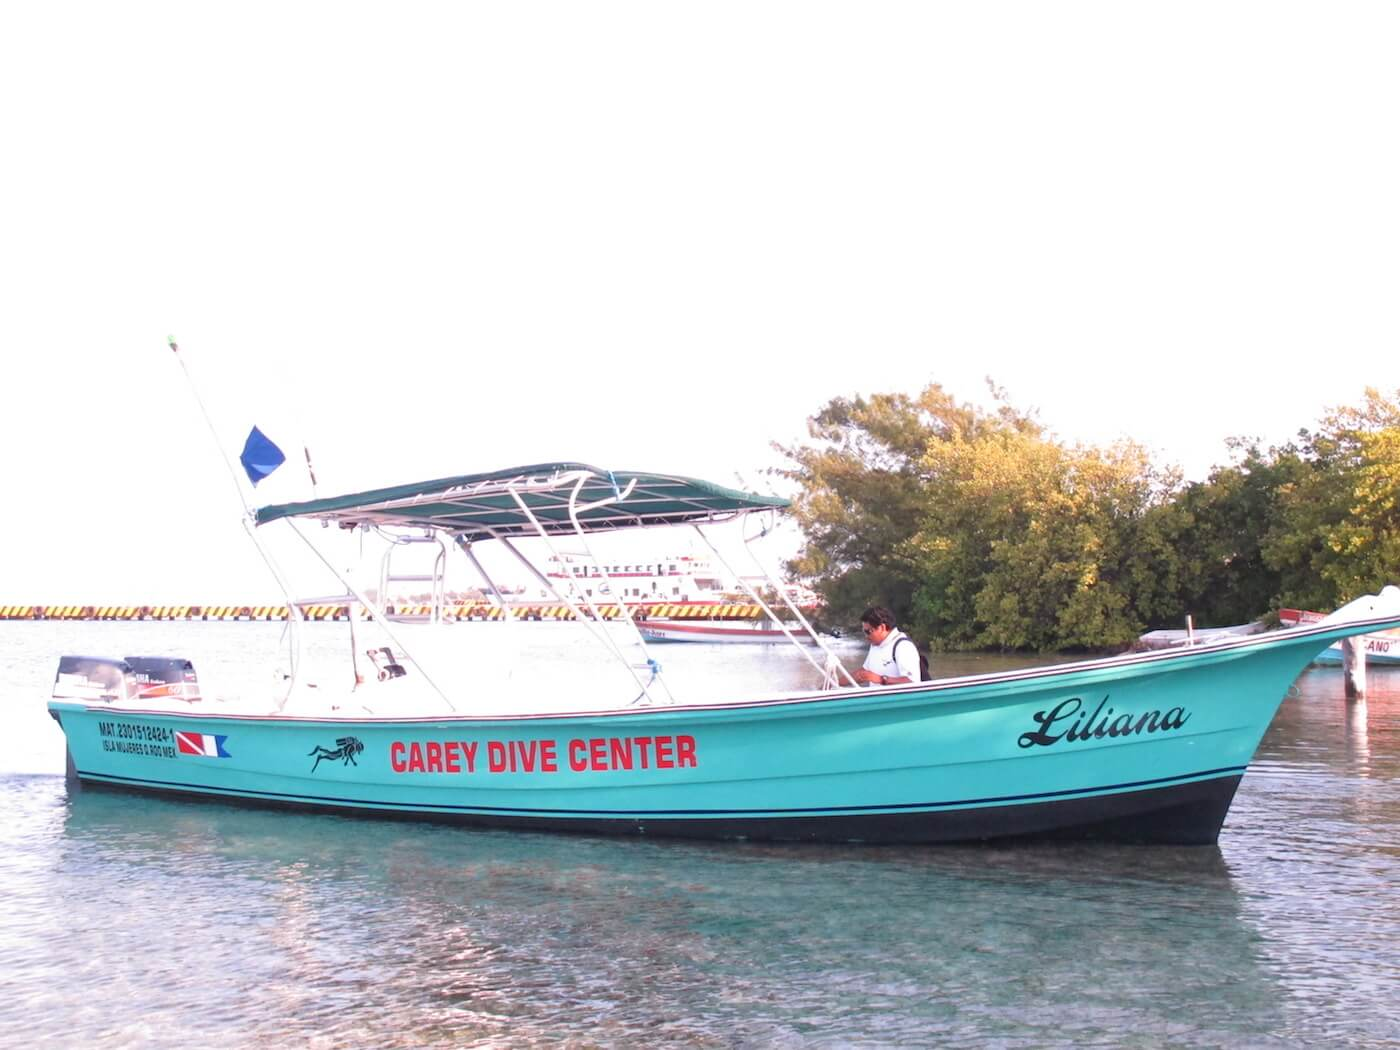 Snorkeling-Scuba-Diving-Trips-Isla-Mujeres-Carey-Dive-Center-4